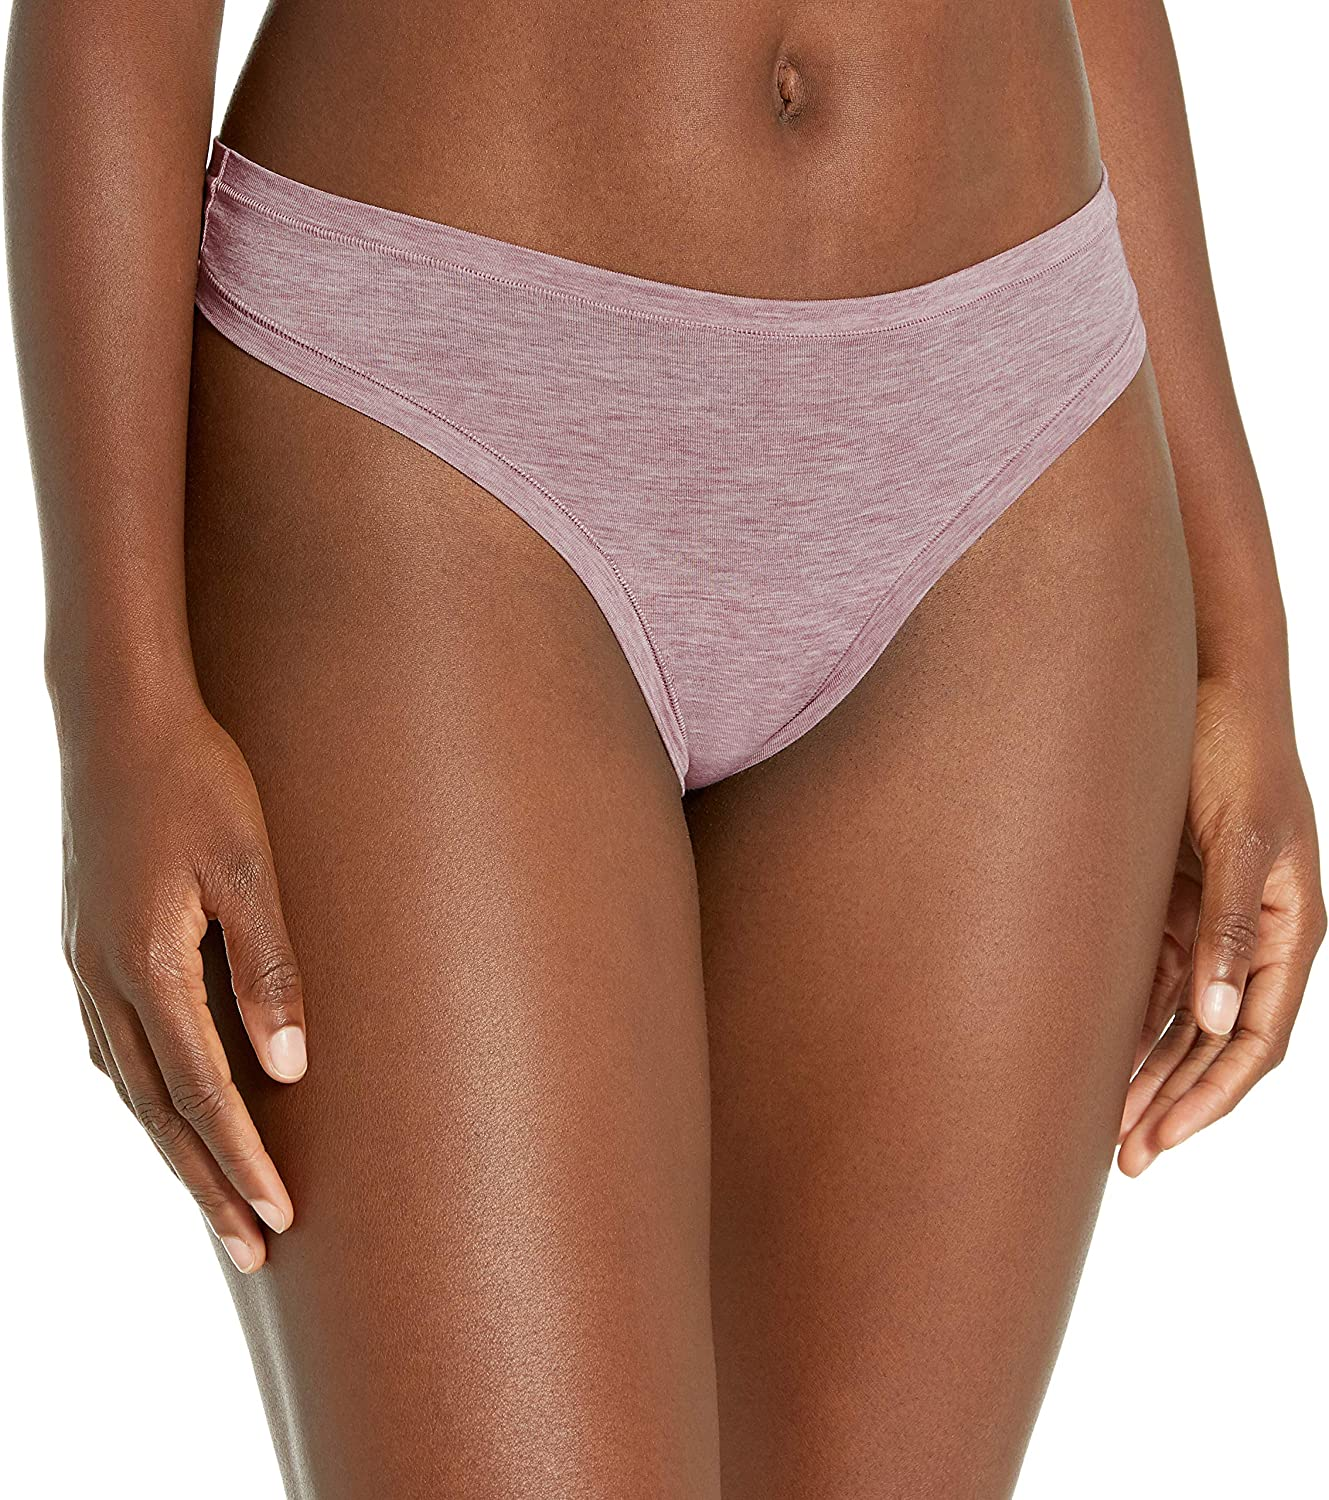 Essentials Breathable Light-Weight Thong Panty Femme